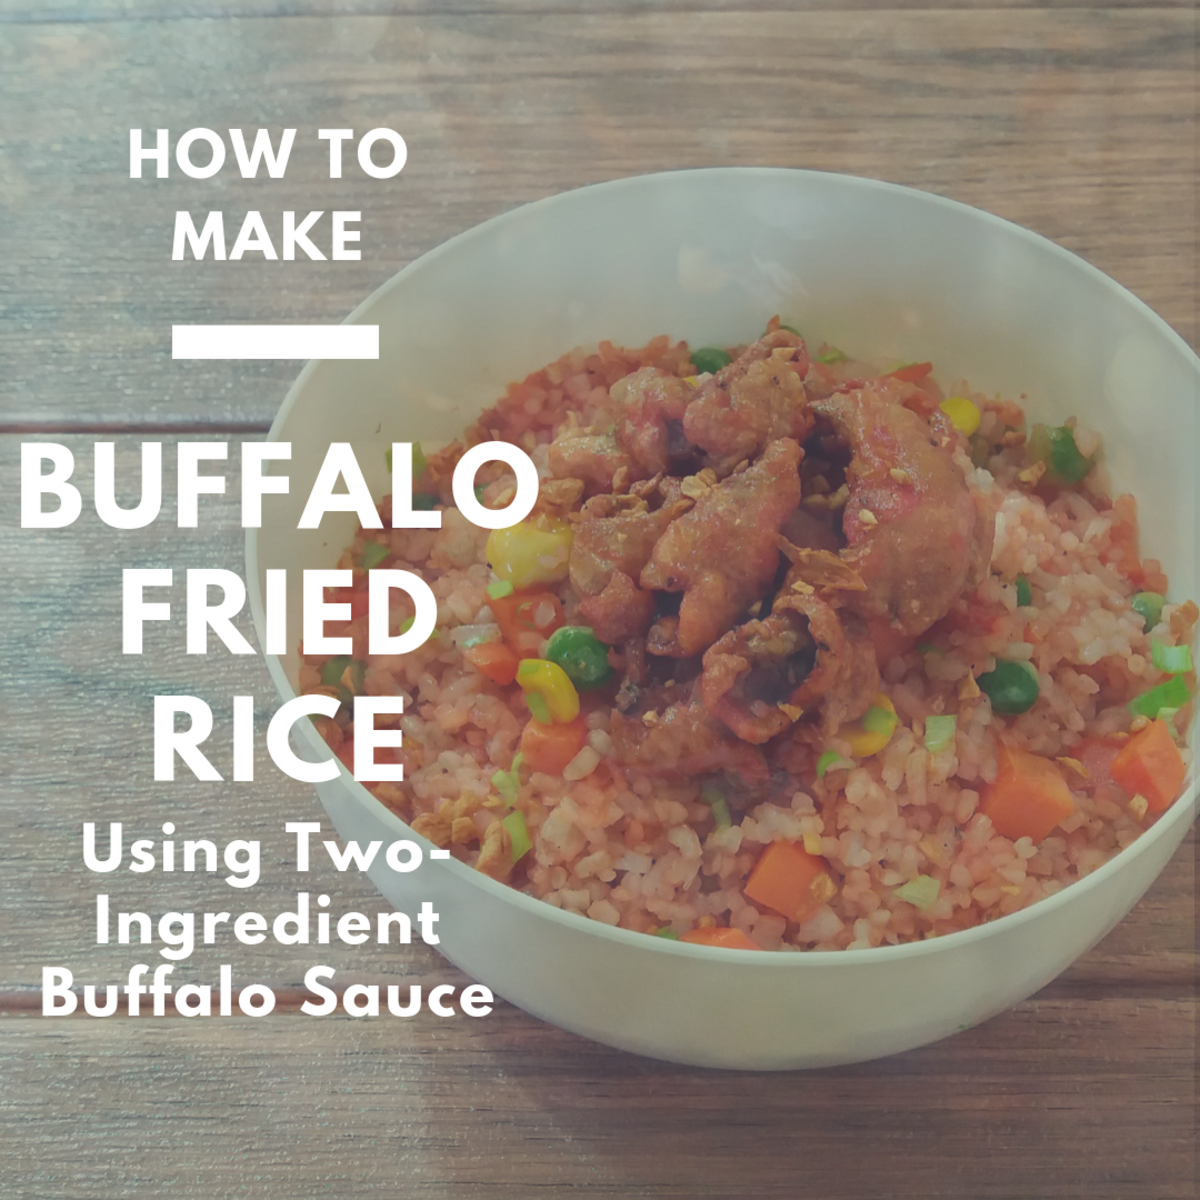 Chicken Skin Fried Rice With Two-Ingredient Buffalo Sauce